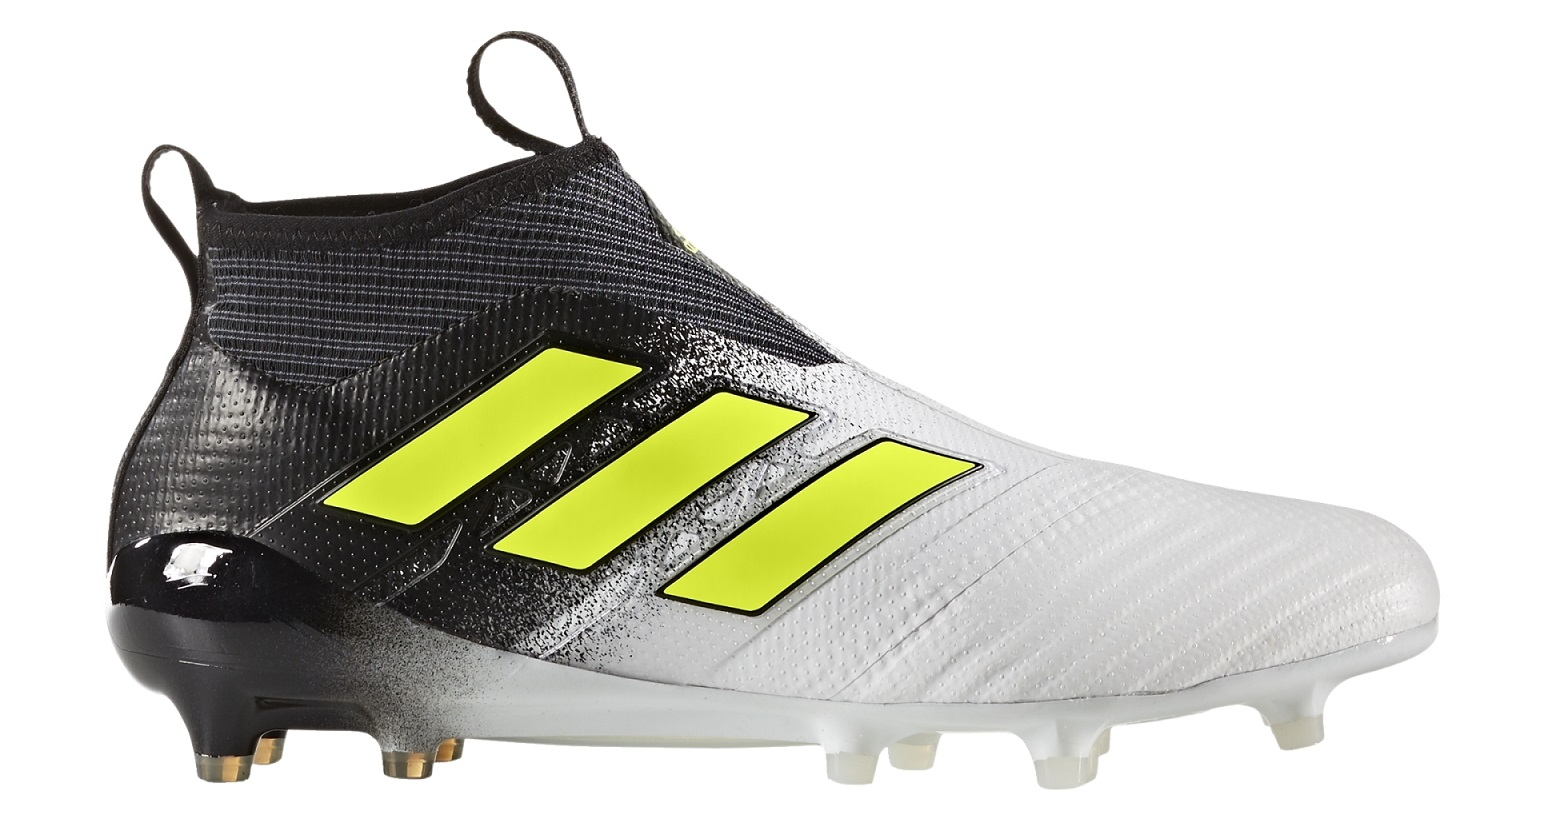 robo No esencial Llave  Adidas Football boots Ace 17+ Purecontrol FG Dust Storm Pack colore White  Black - Adidas - SportIT.com